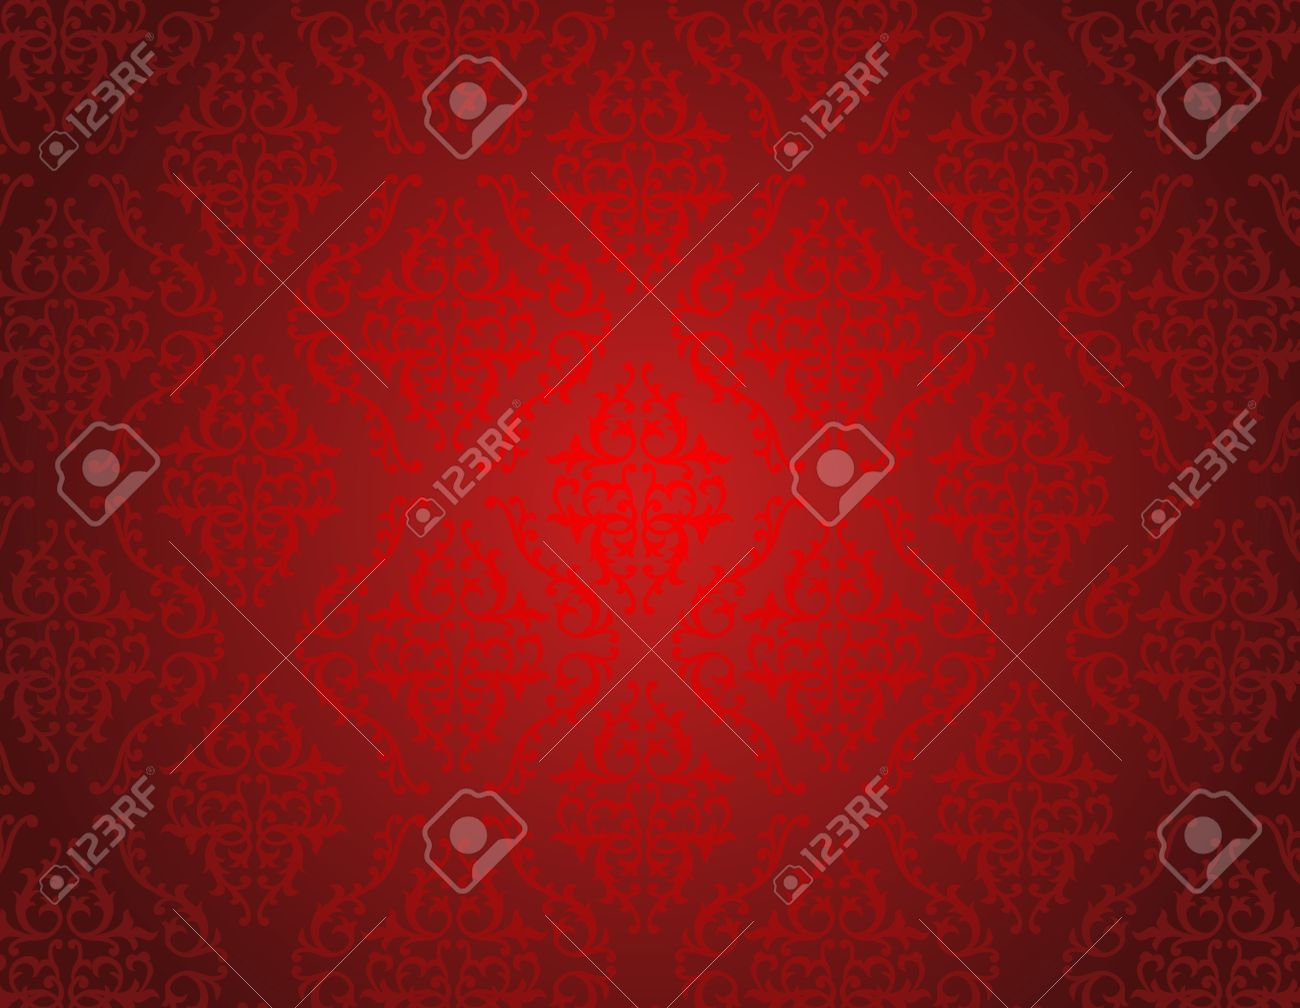 Elegant Red Shiny Damask Seamless Pattern Background Perfect